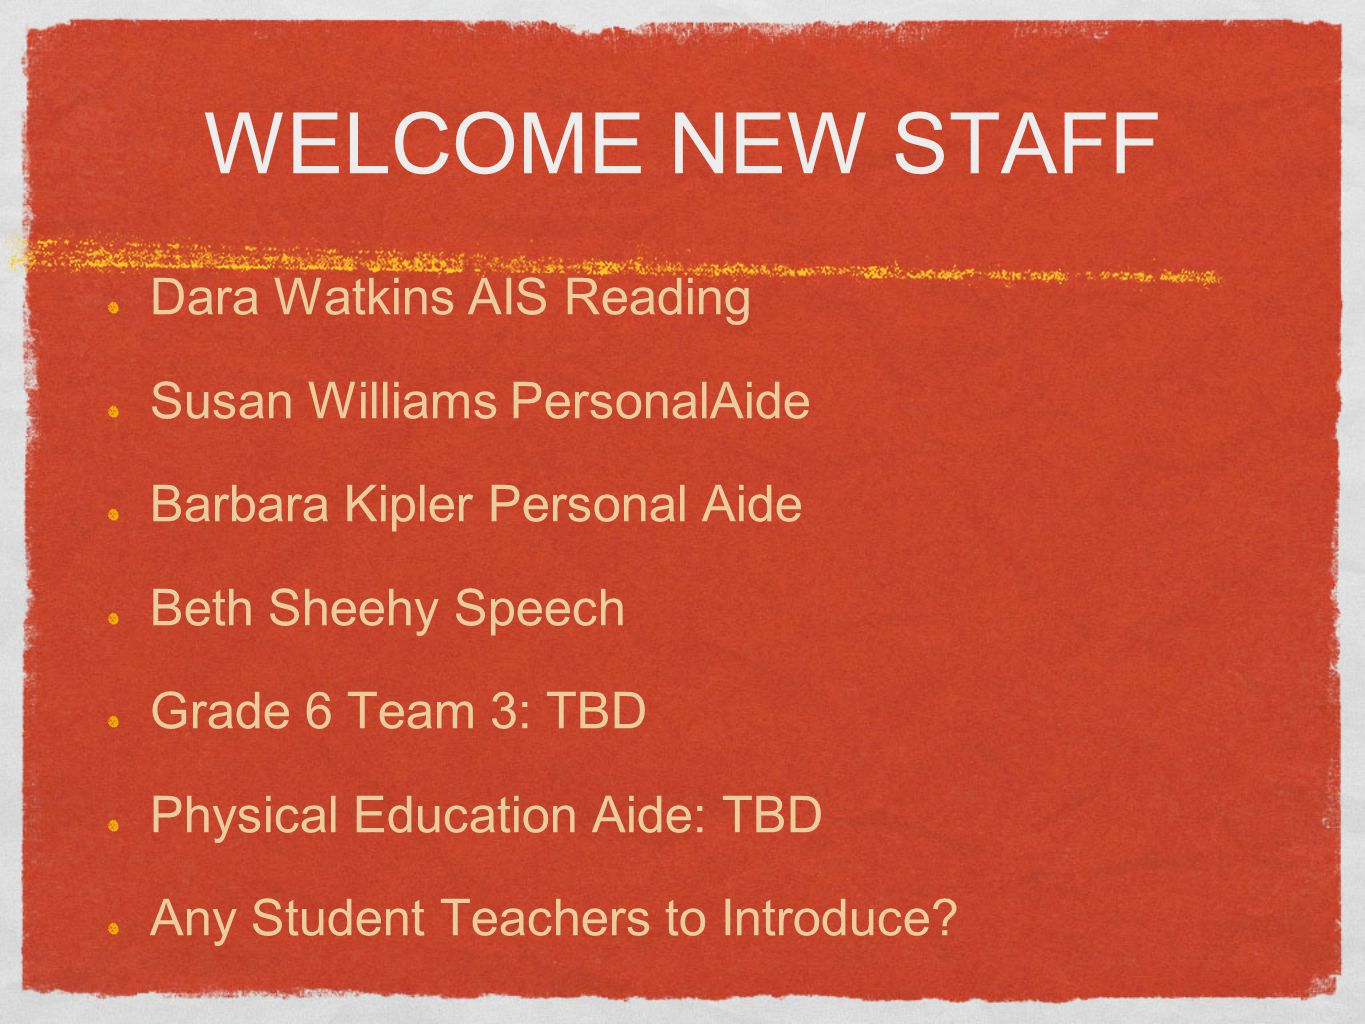 WELCOME NEW STAFF Dara Watkins AIS Reading Susan Williams PersonalAide Barbara Kipler Personal Aide Beth Sheehy Speech Grade 6 Team 3: TBD Physical Education Aide: TBD Any Student Teachers to Introduce?